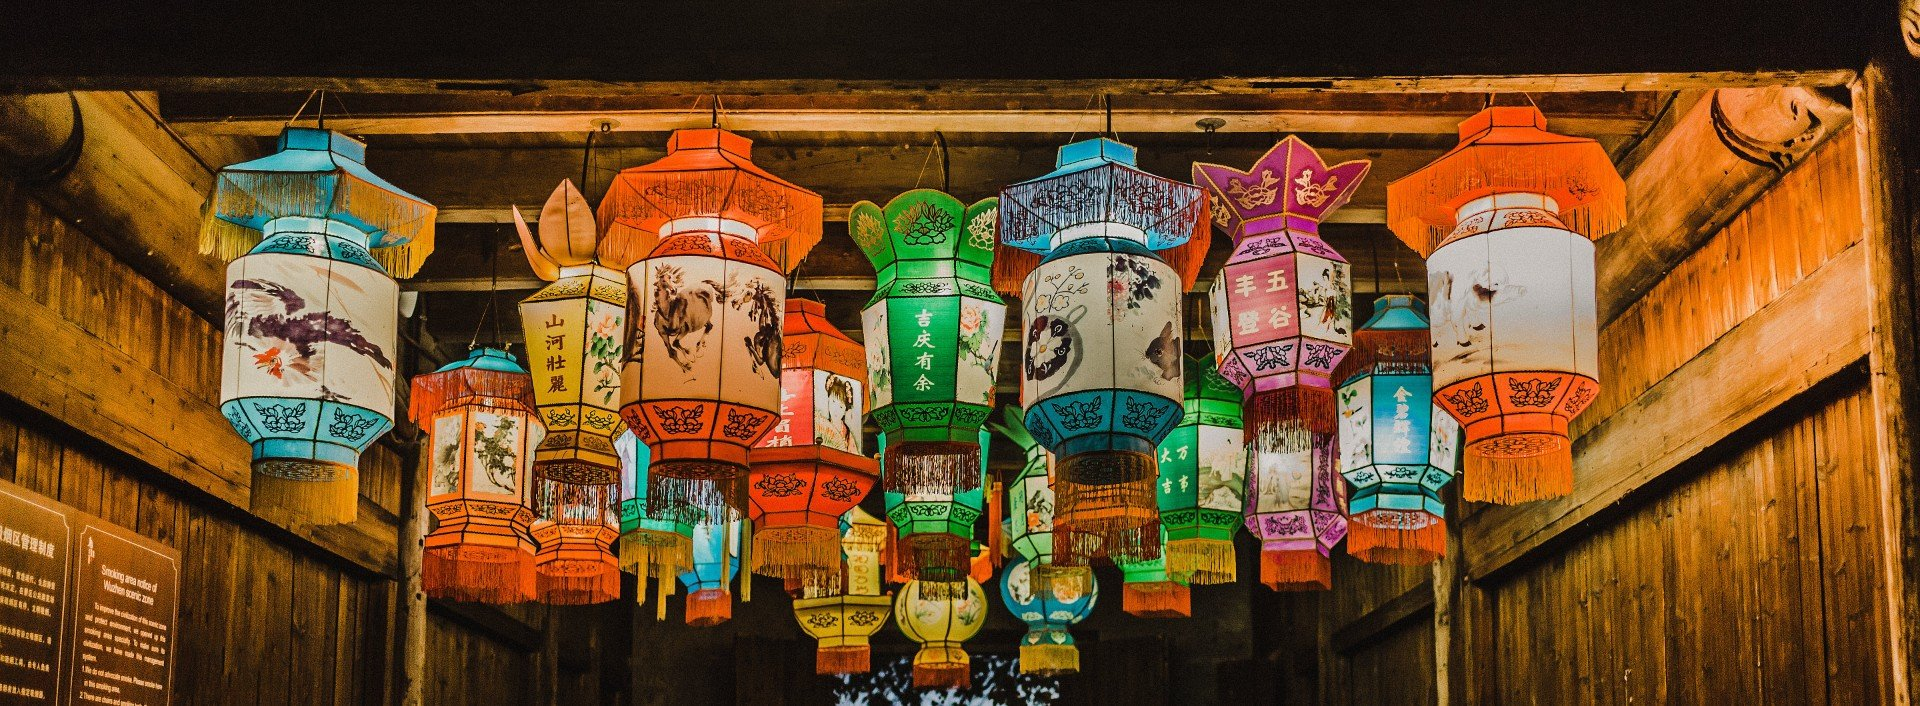 Chinese Loan Words: Many different colored lanterns with Chinese writing and paintings on them hang from a ceiling.